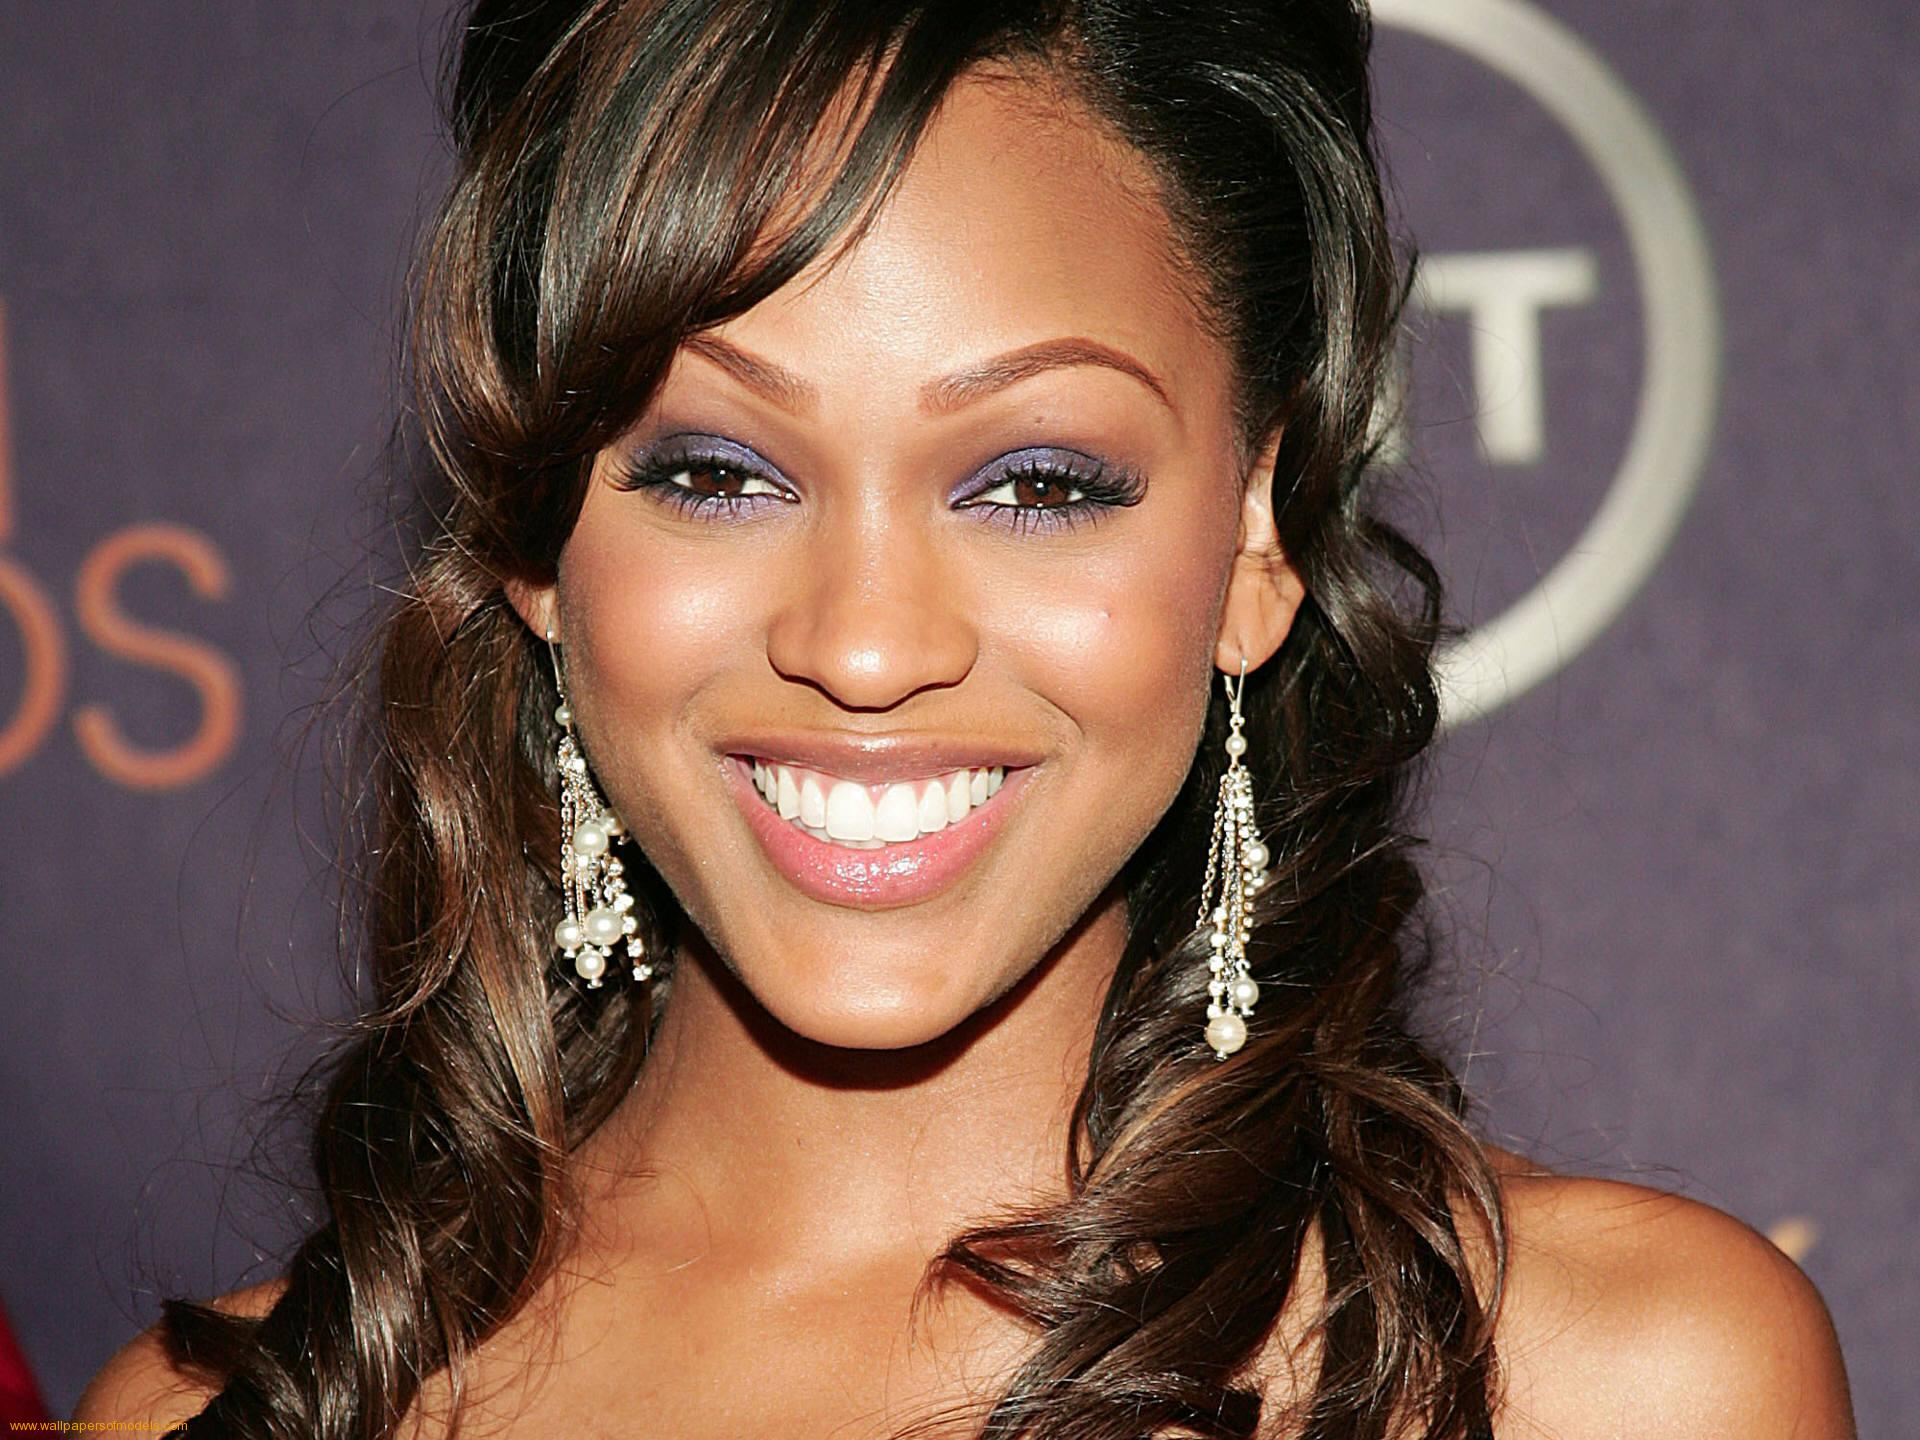 meagan good normal Meagan Good Picture